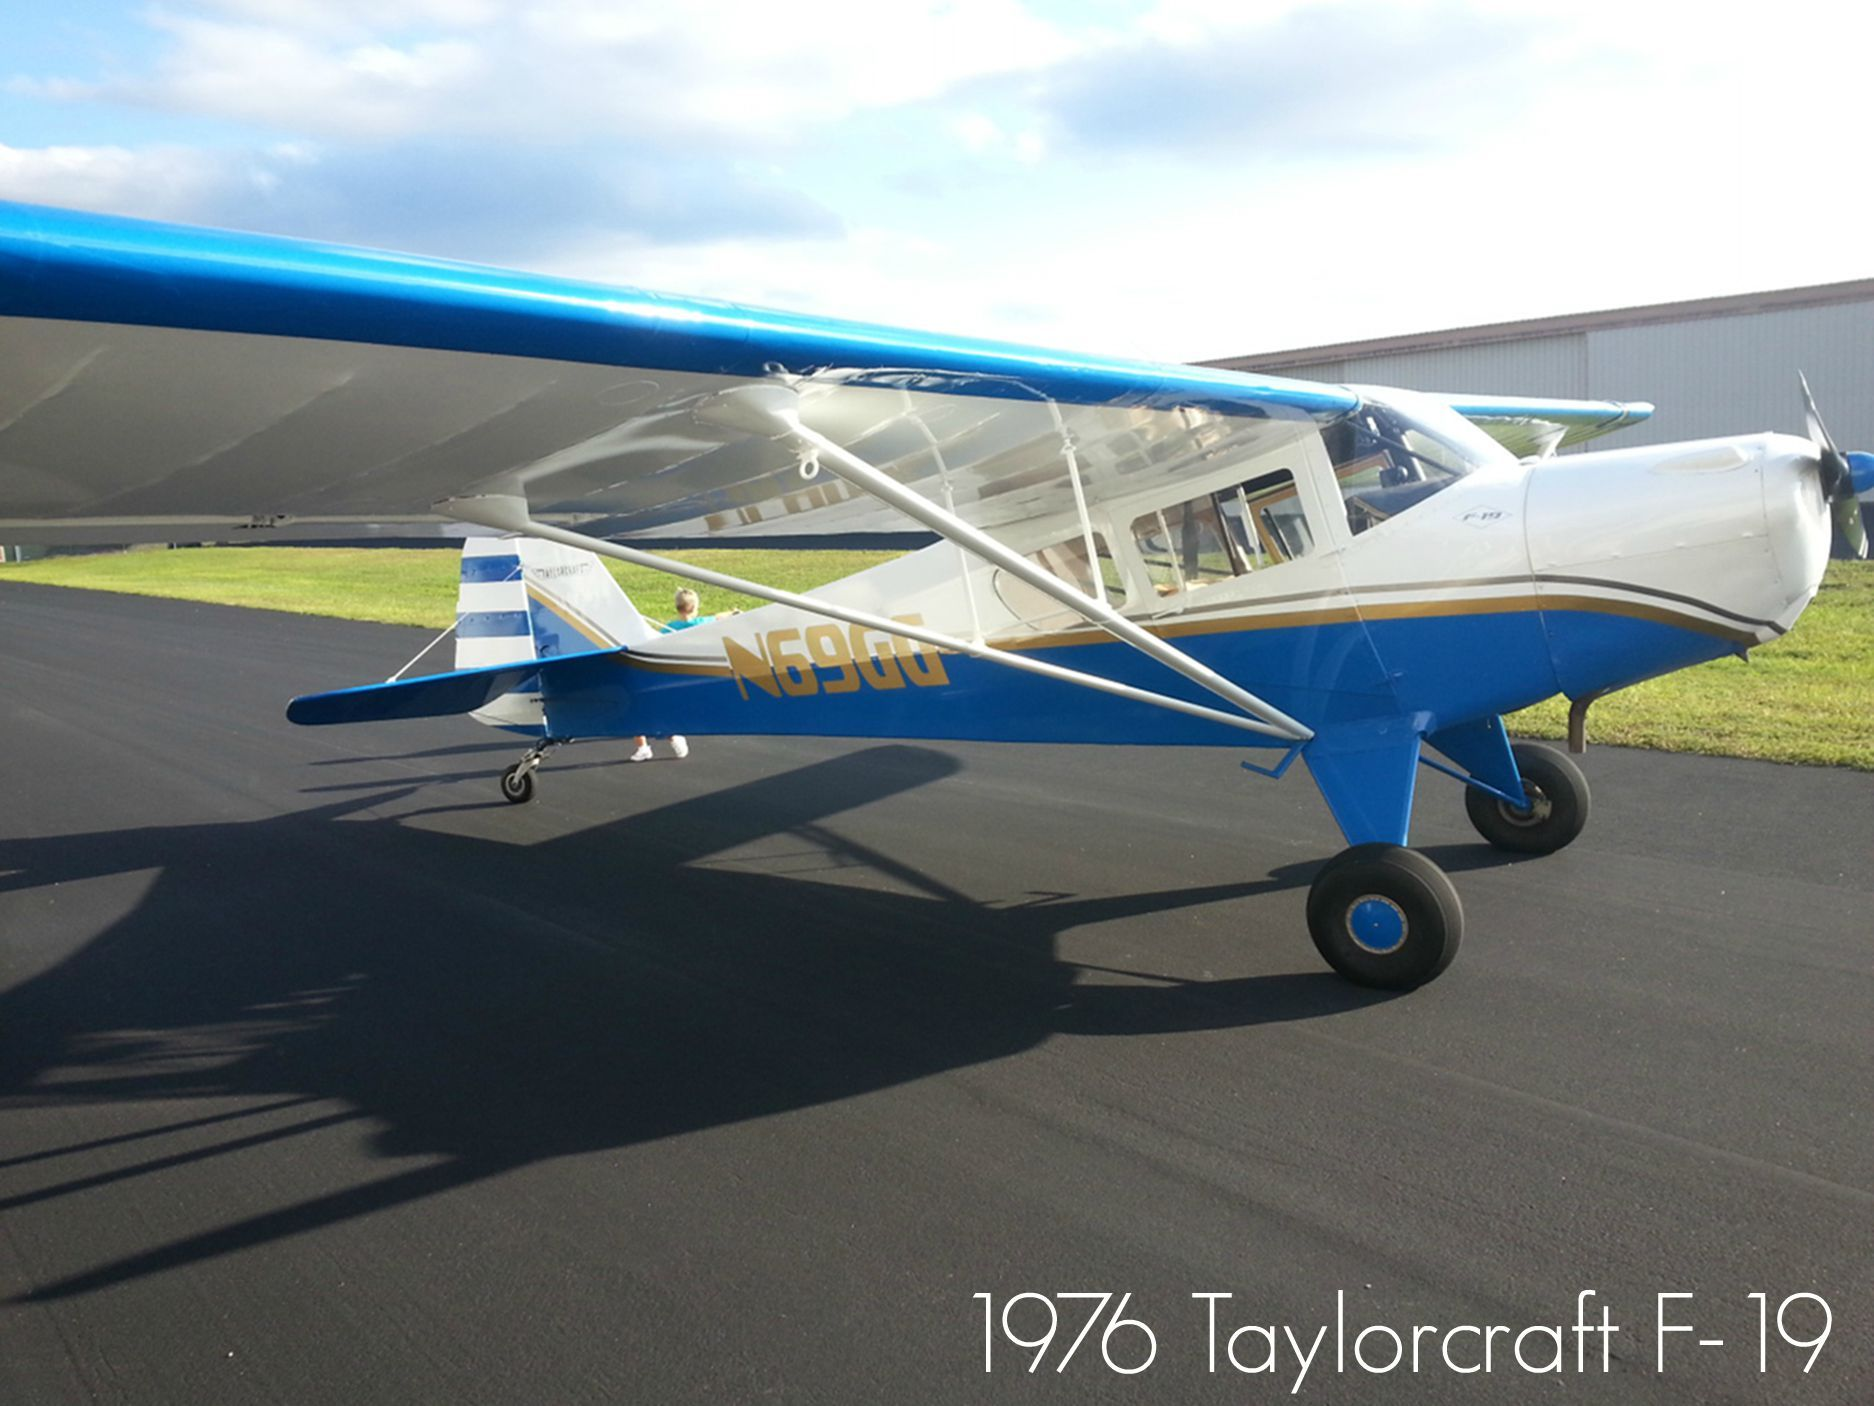 1976 Taylorcraft F-19 Available At Www.trade-a-plane.com